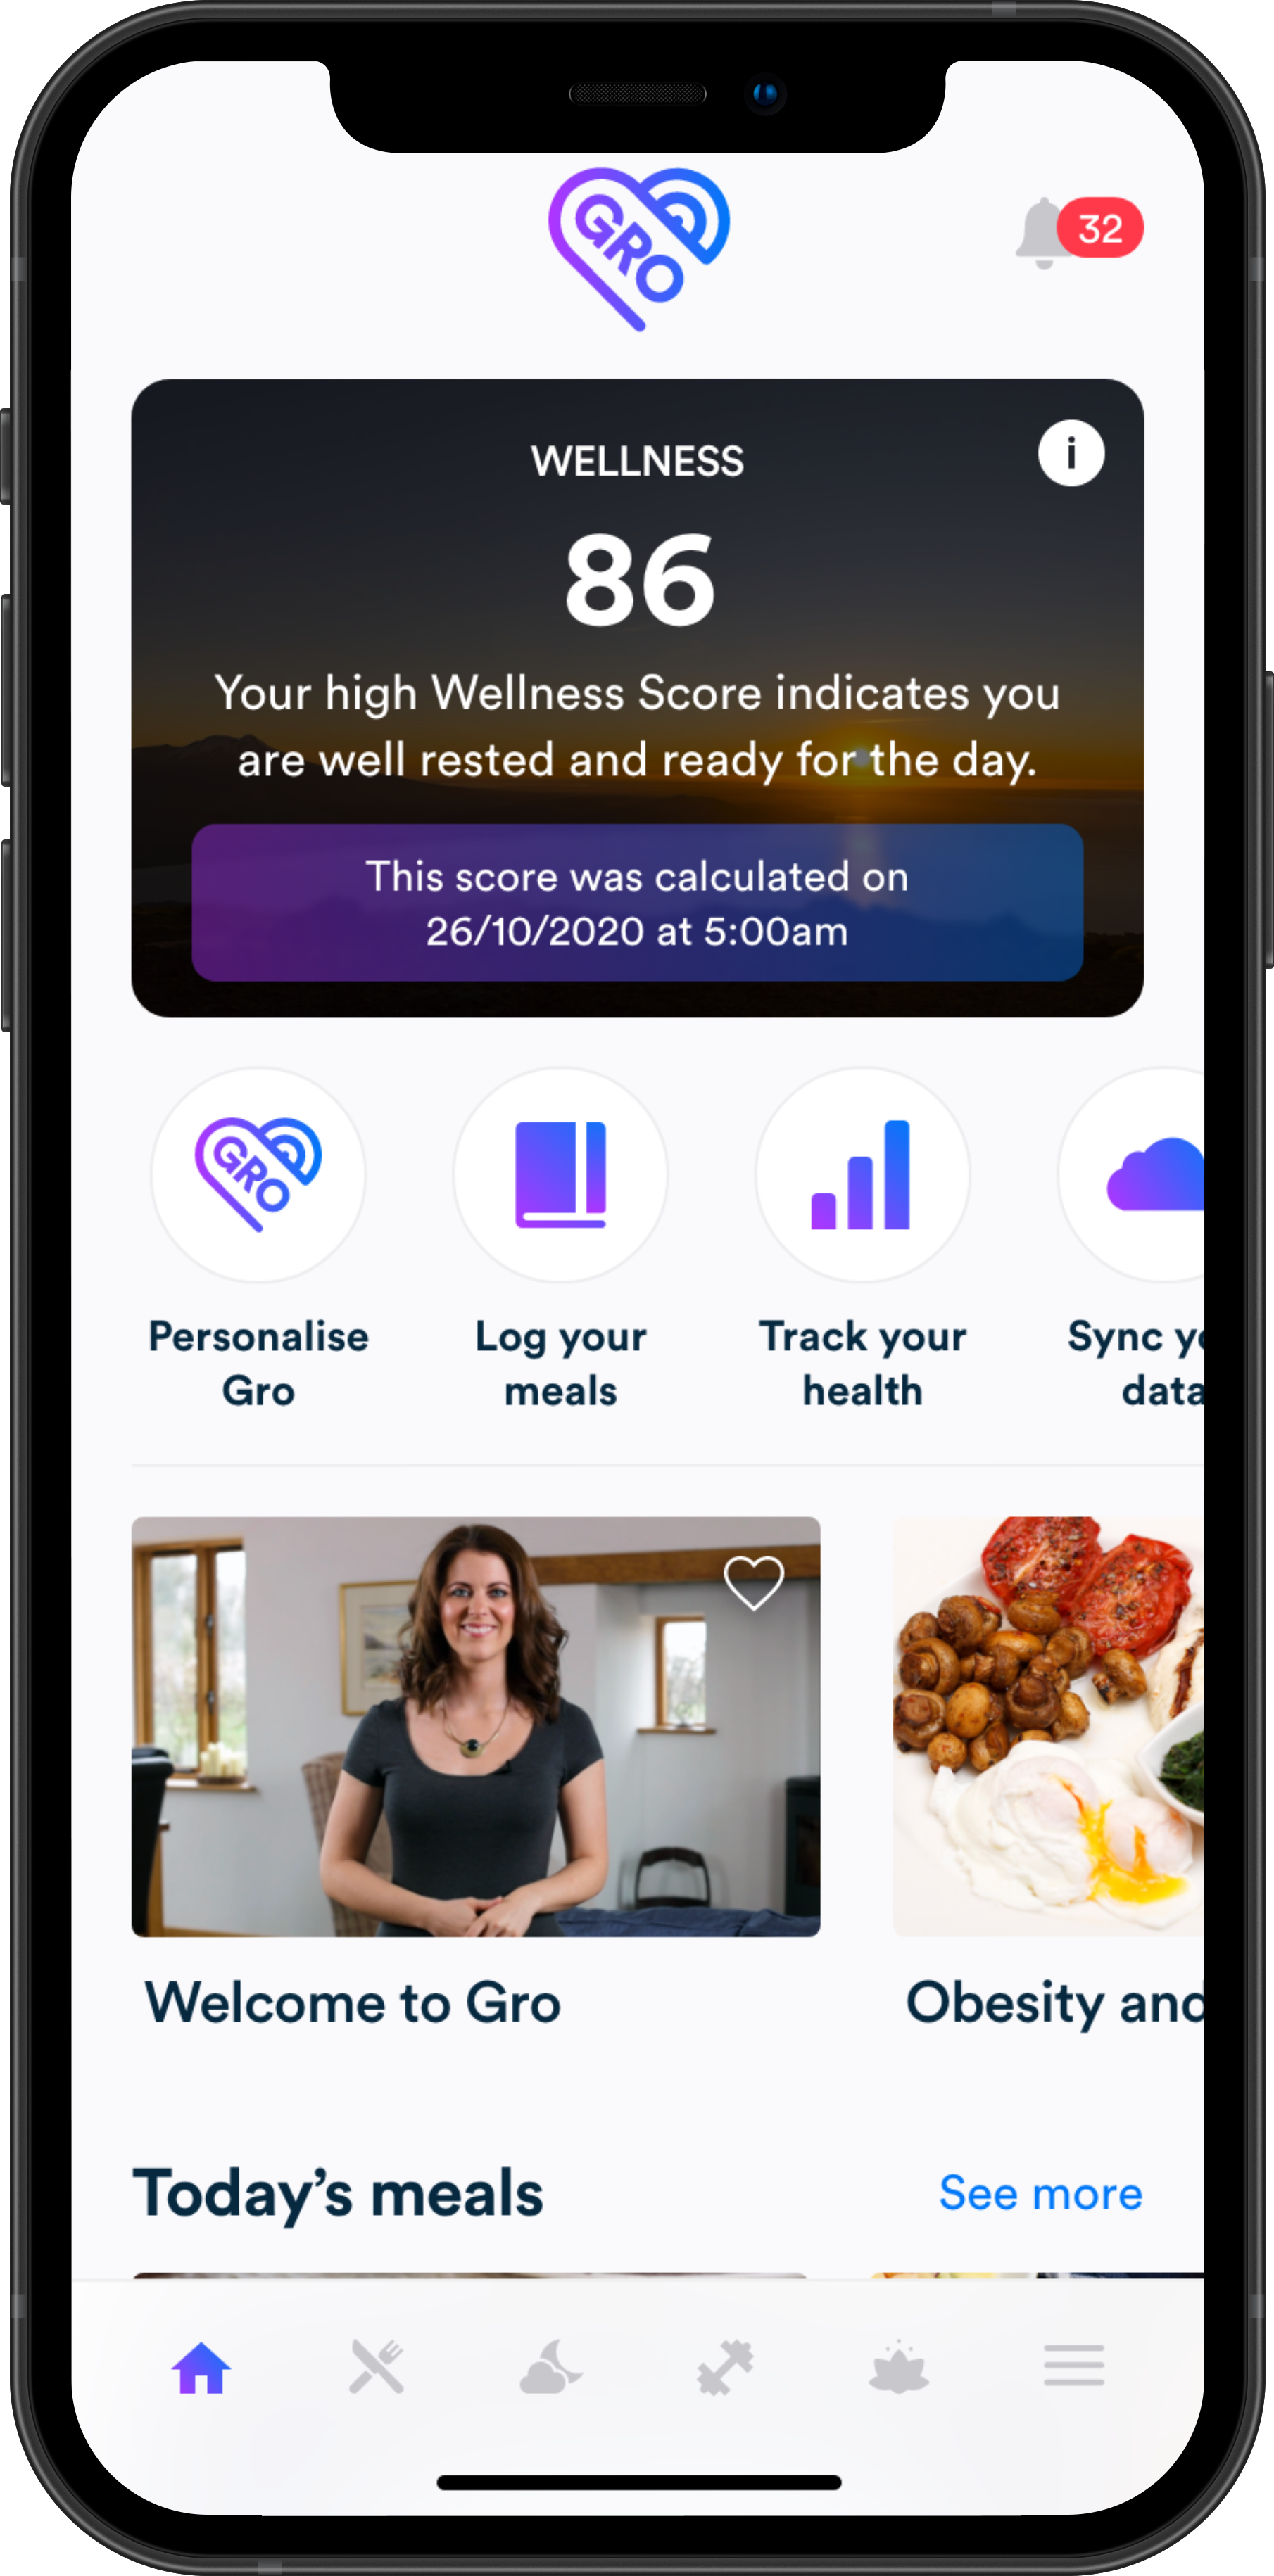 Gro Health app showing a Wellness Score of 86